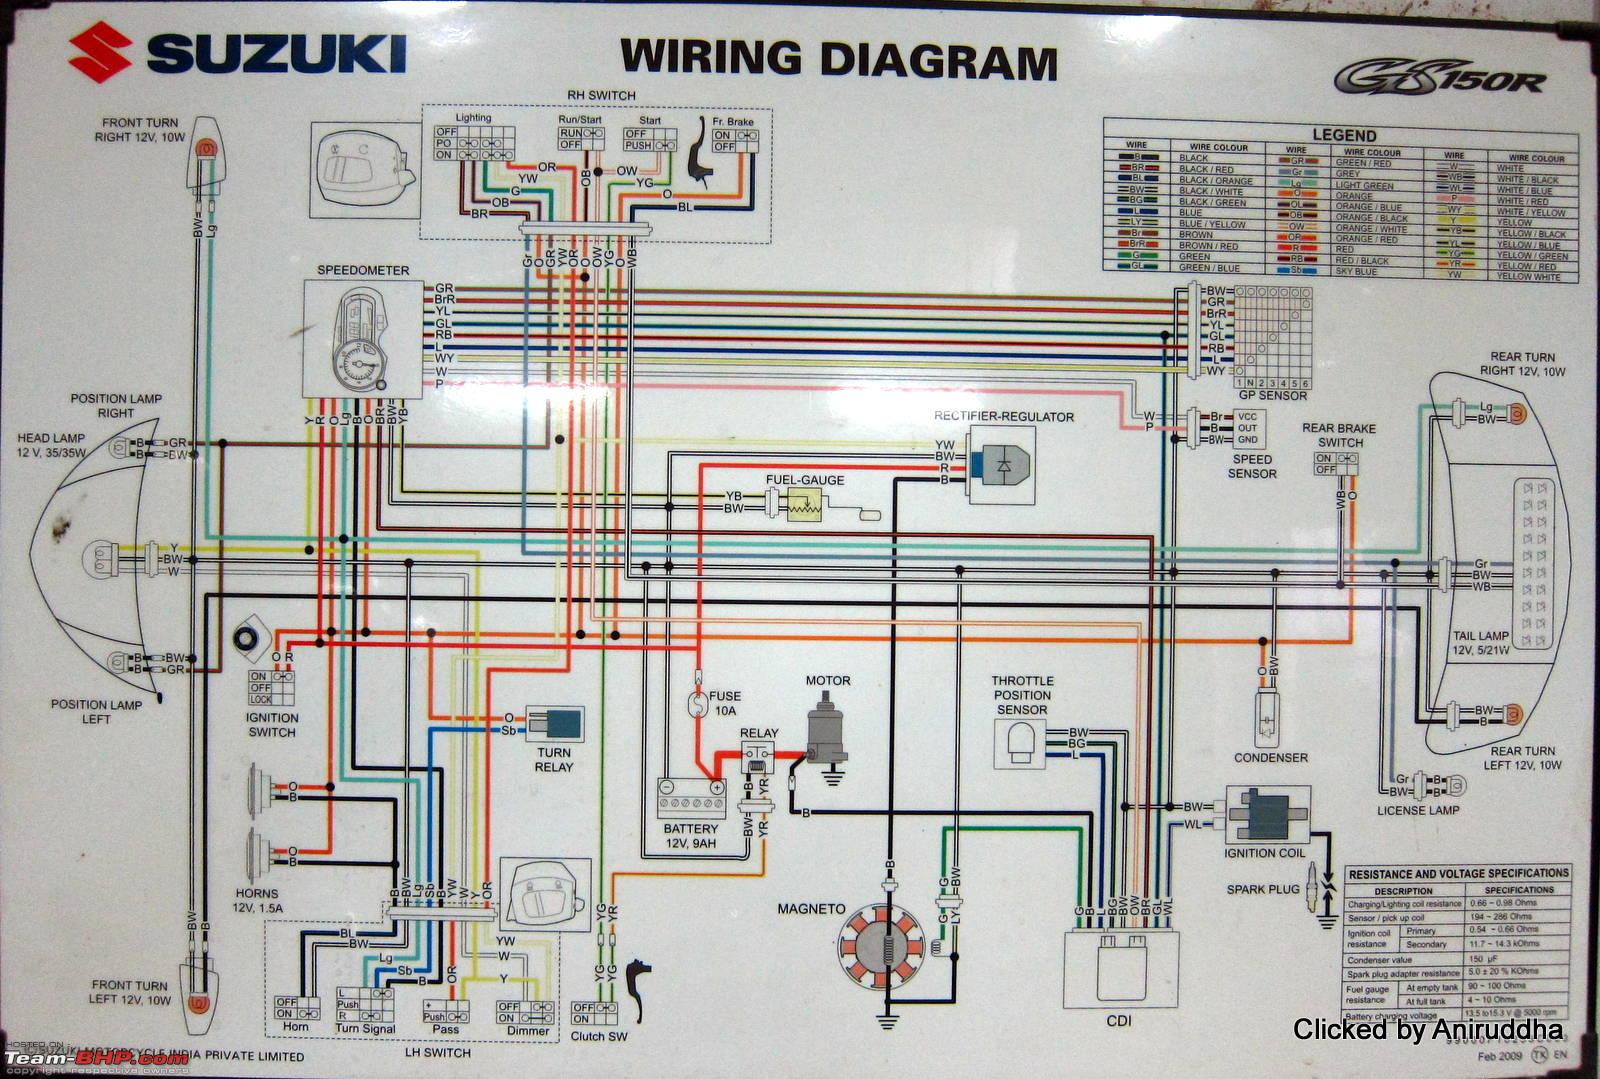 hight resolution of suzuki motorcycle schematics box wiring diagram suzuki dt40 wiring schematic 805 suzuki motorcycle wiring diagrams wiring